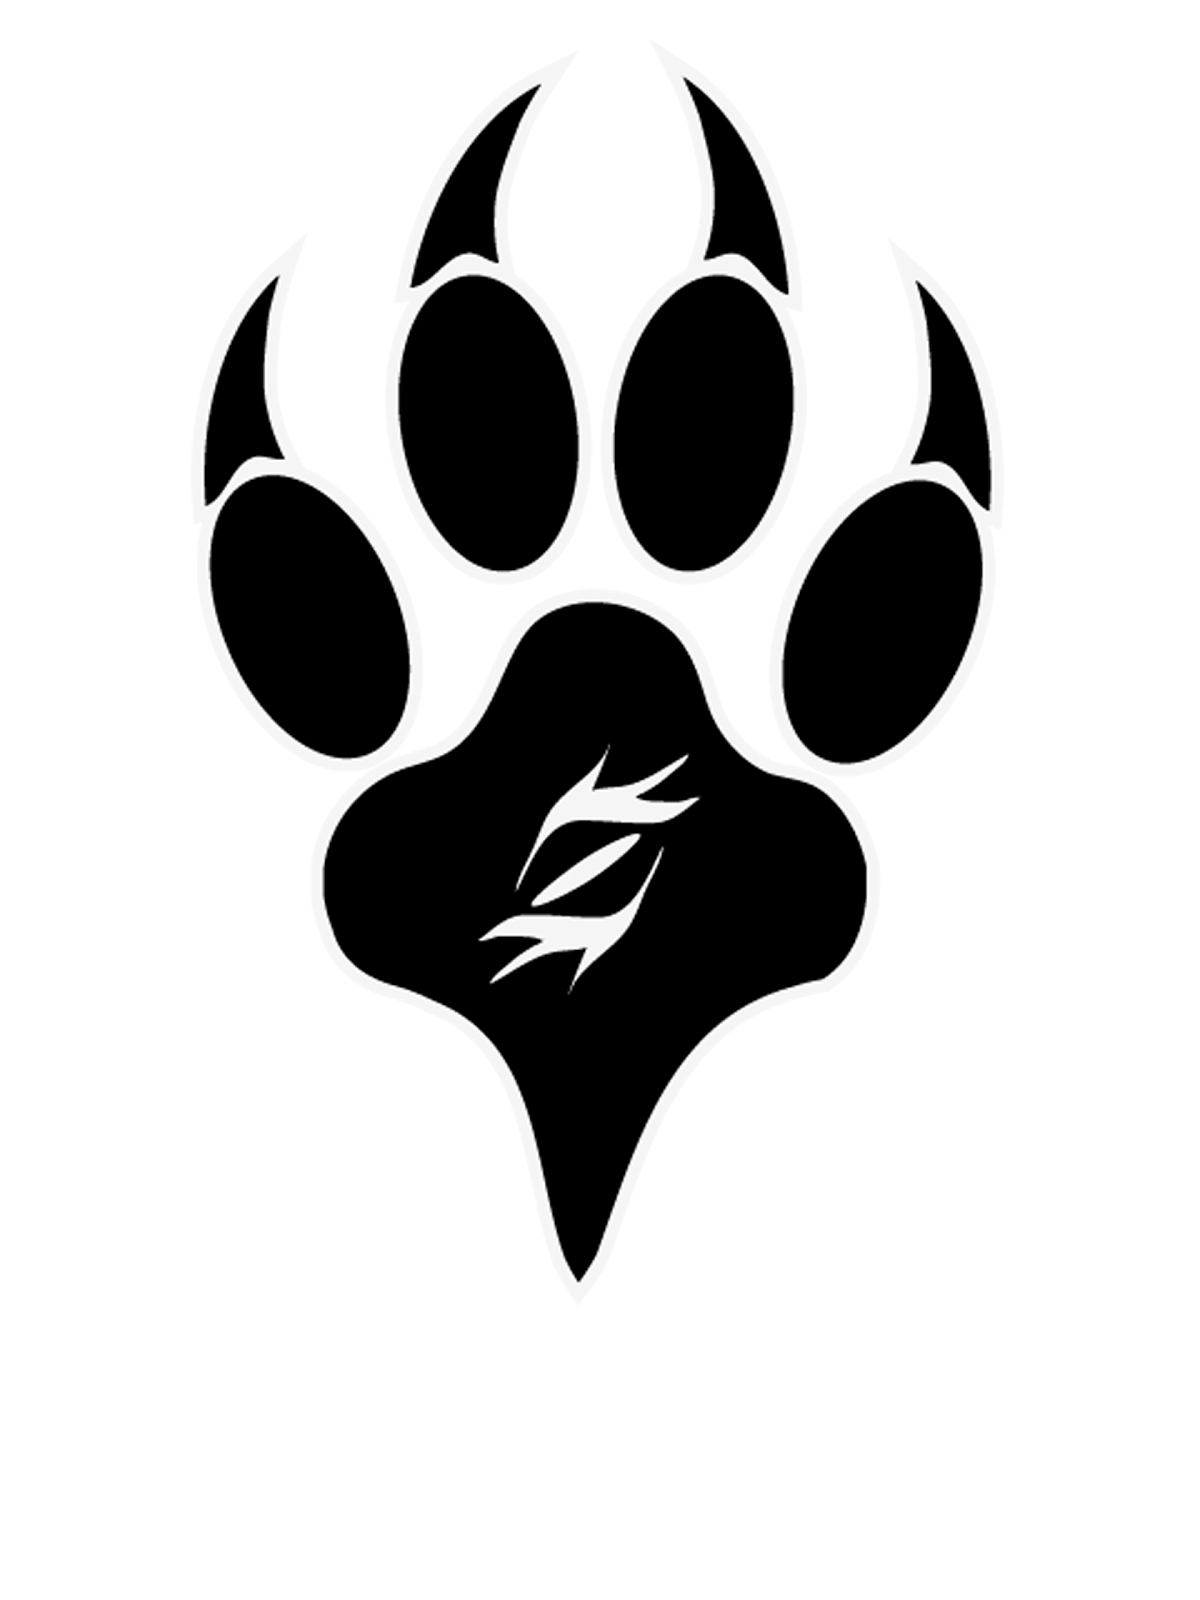 Wolf logo png. Viewing gallery for design